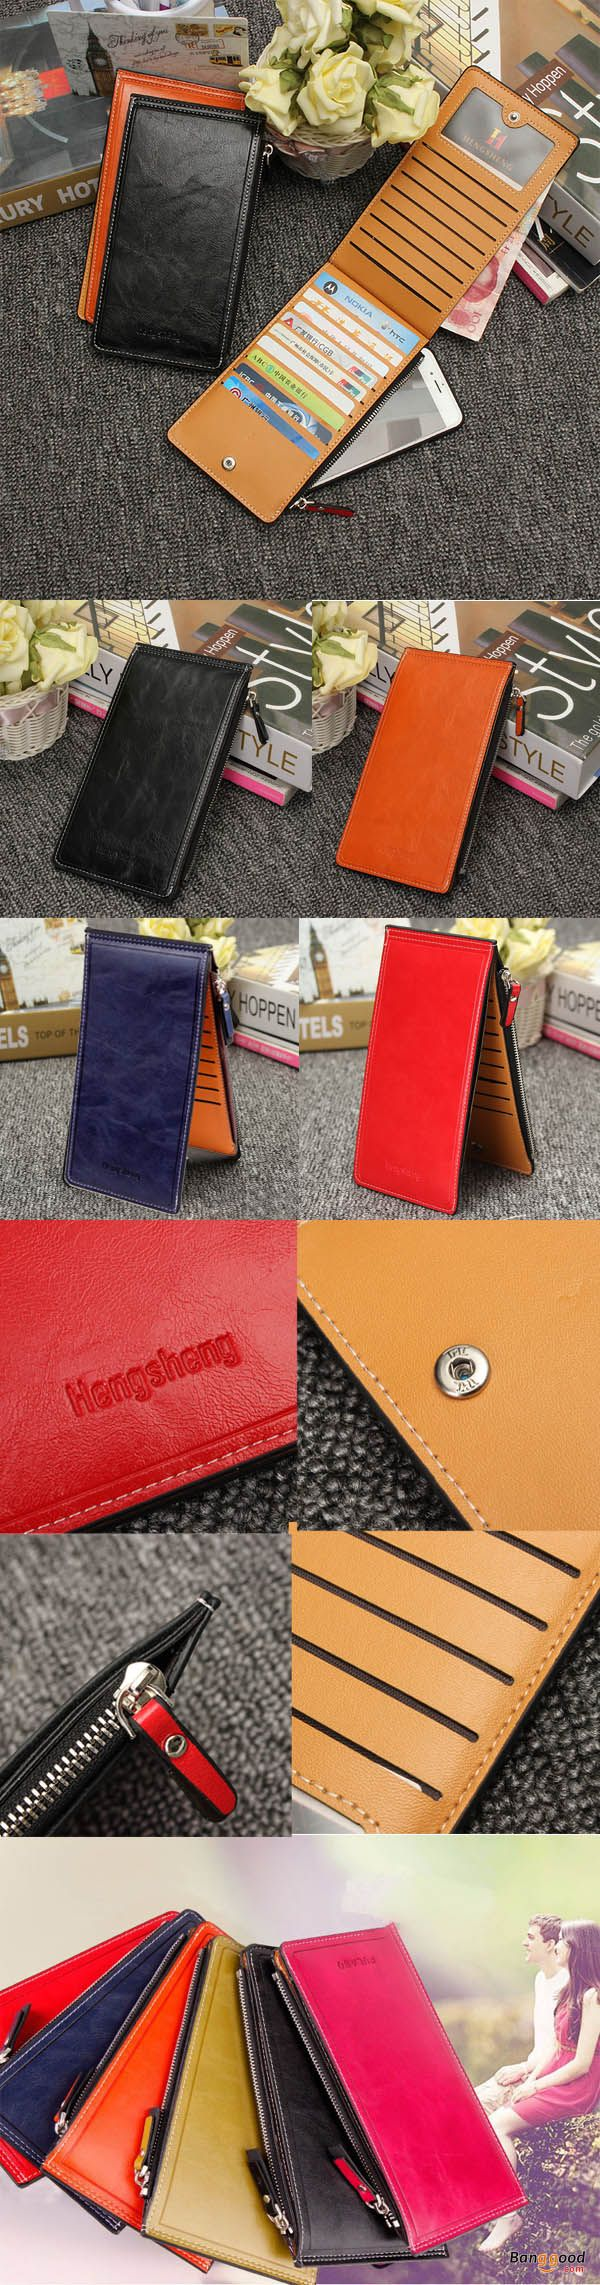 129 Best Phone Bags Images On Pinterest Purses Card Holder And